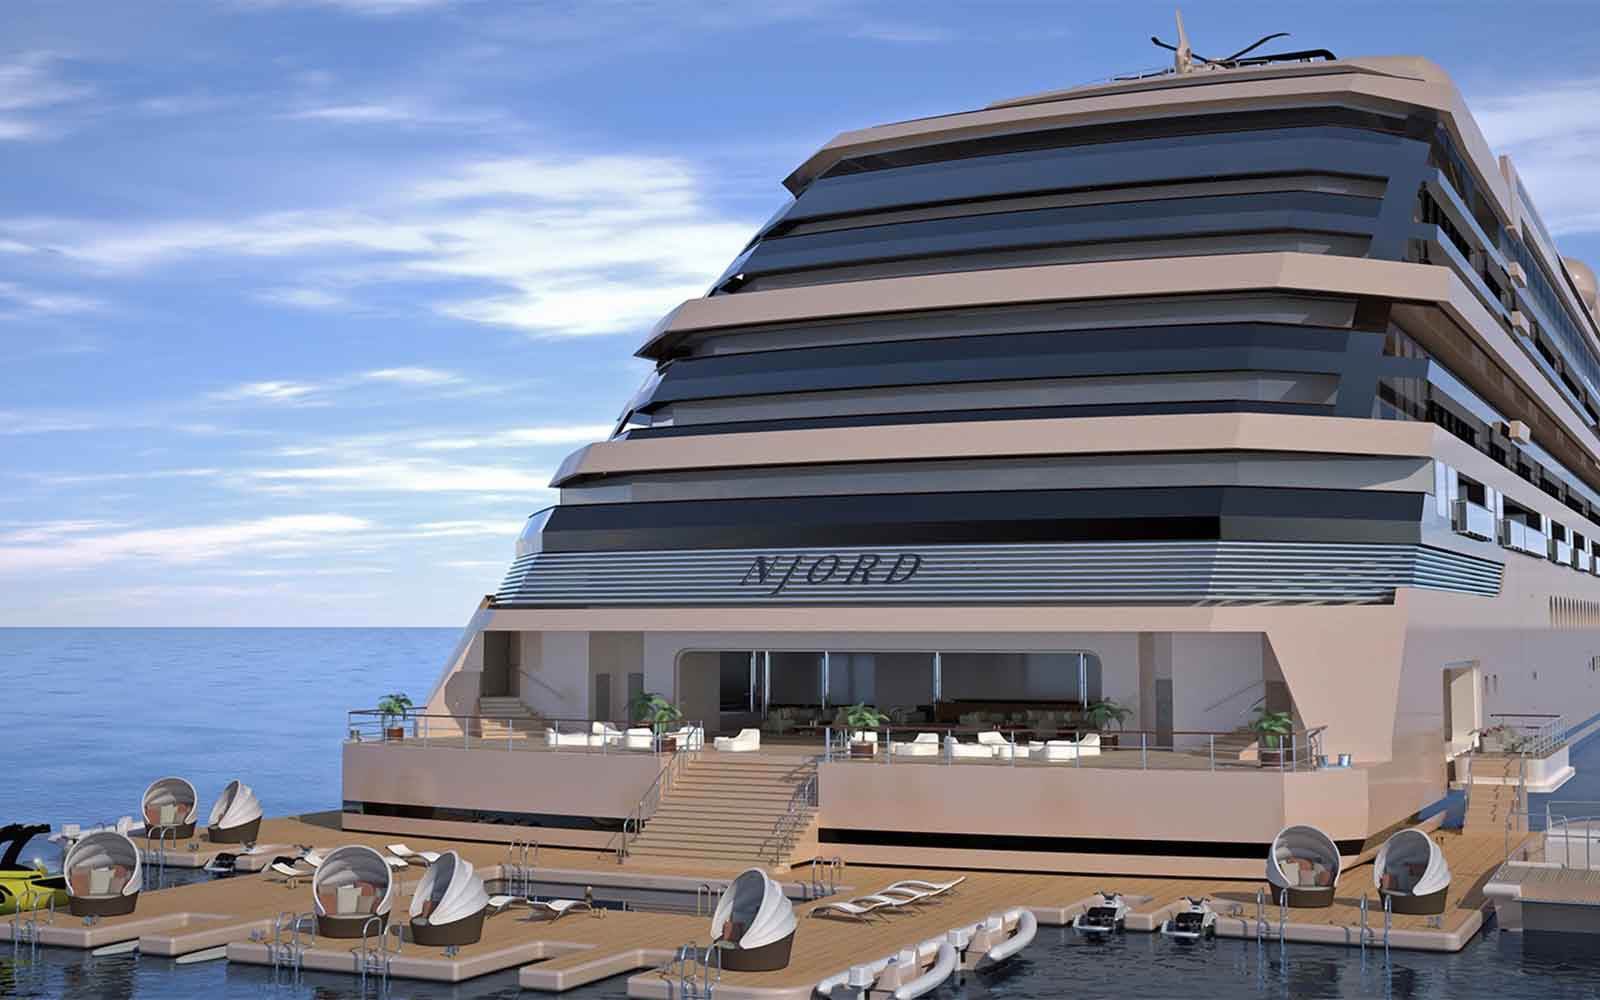 Njord superiate residencial - boat shopping